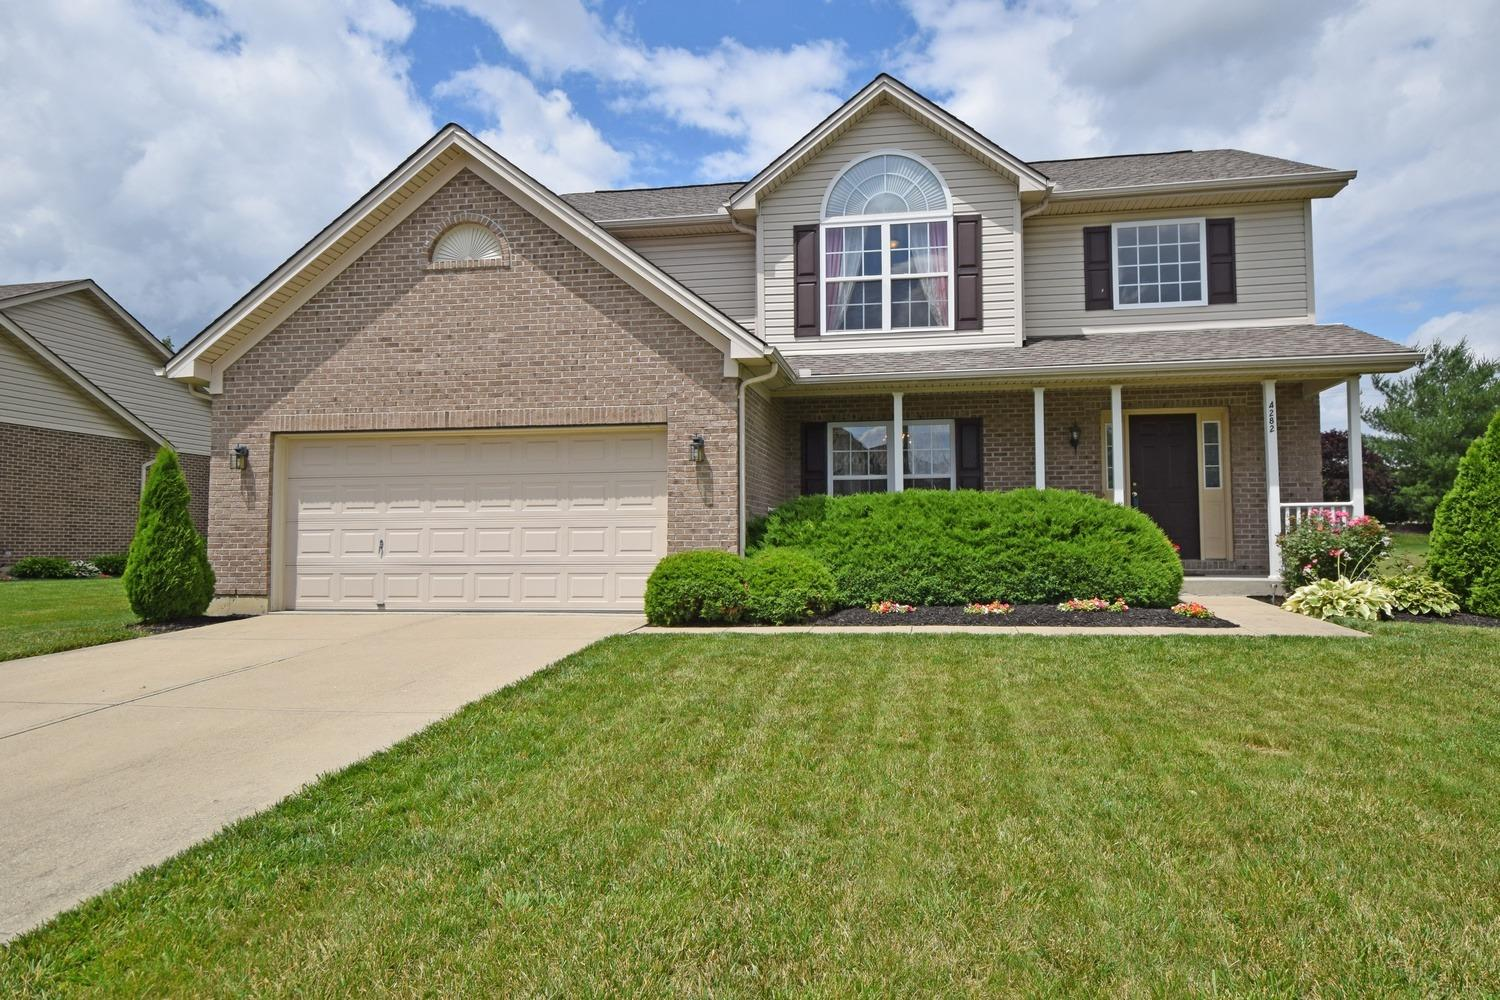 Property for sale at 4282 North Shore Drive, West Chester,  Ohio 45069